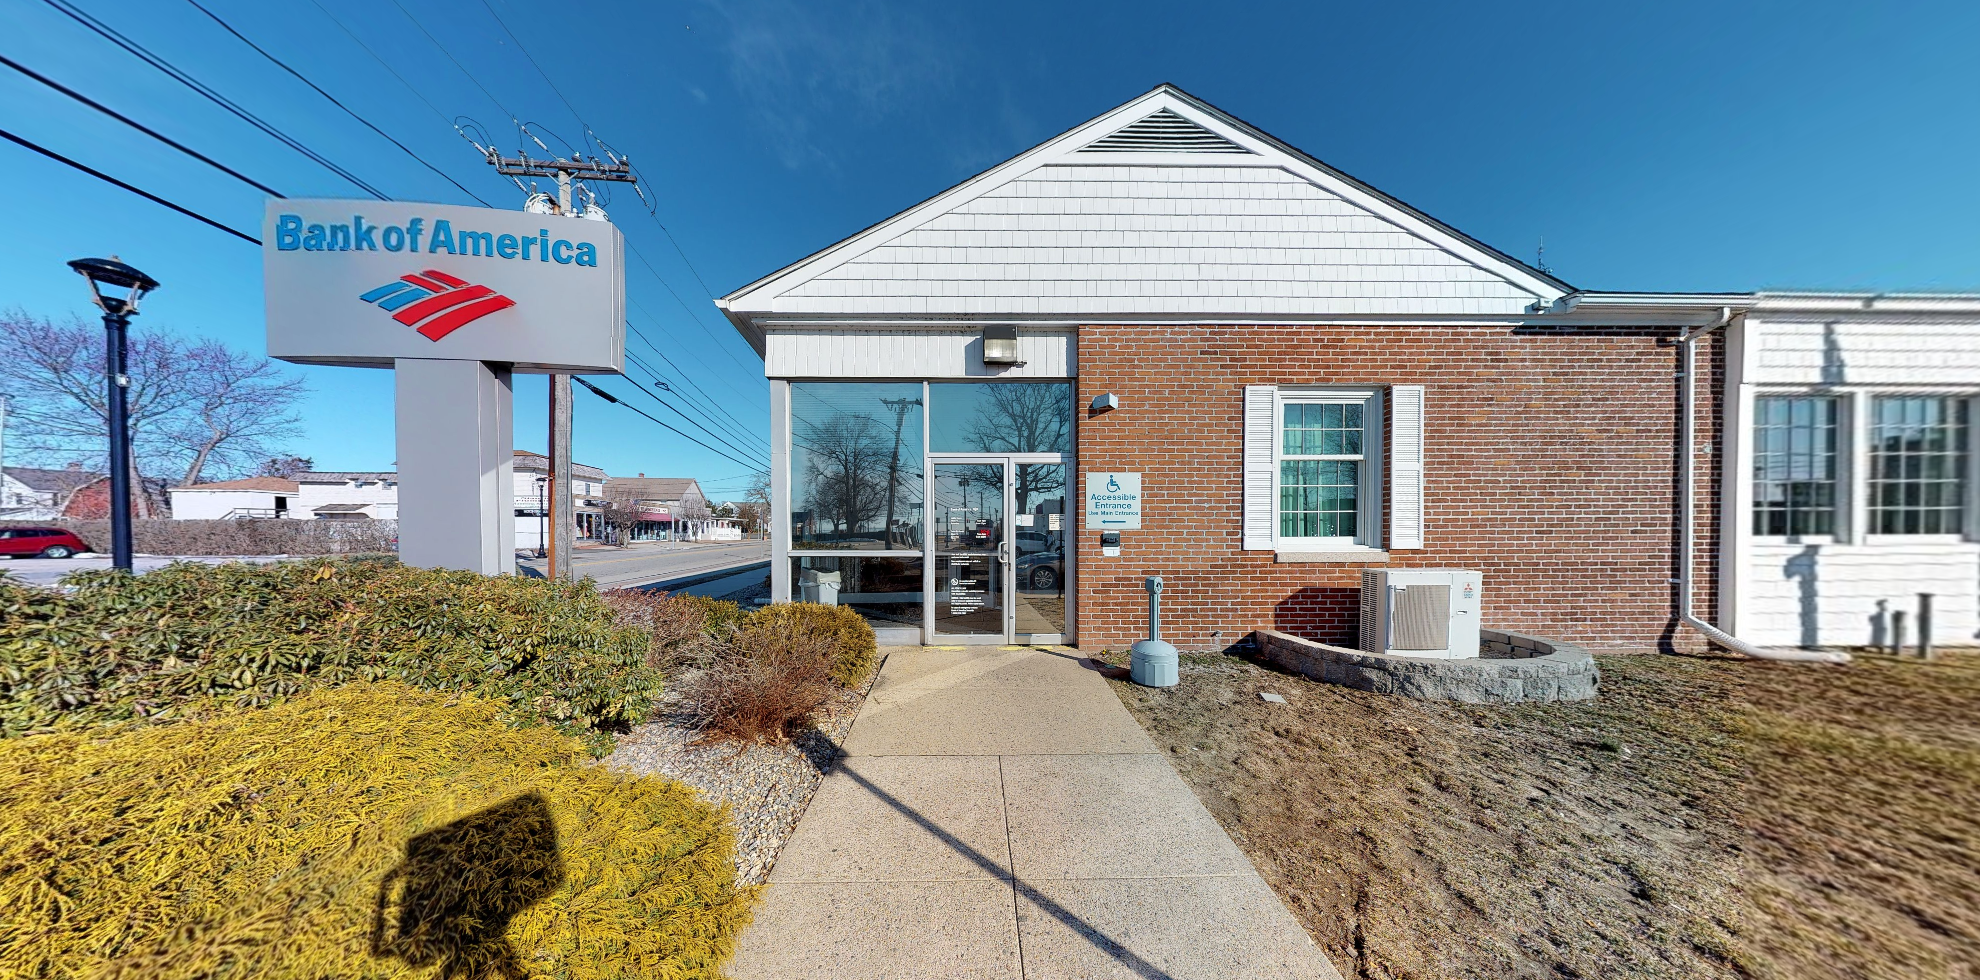 Bank of America financial center with drive-thru ATM   25 Pennsylvania Ave, Niantic, CT 06357